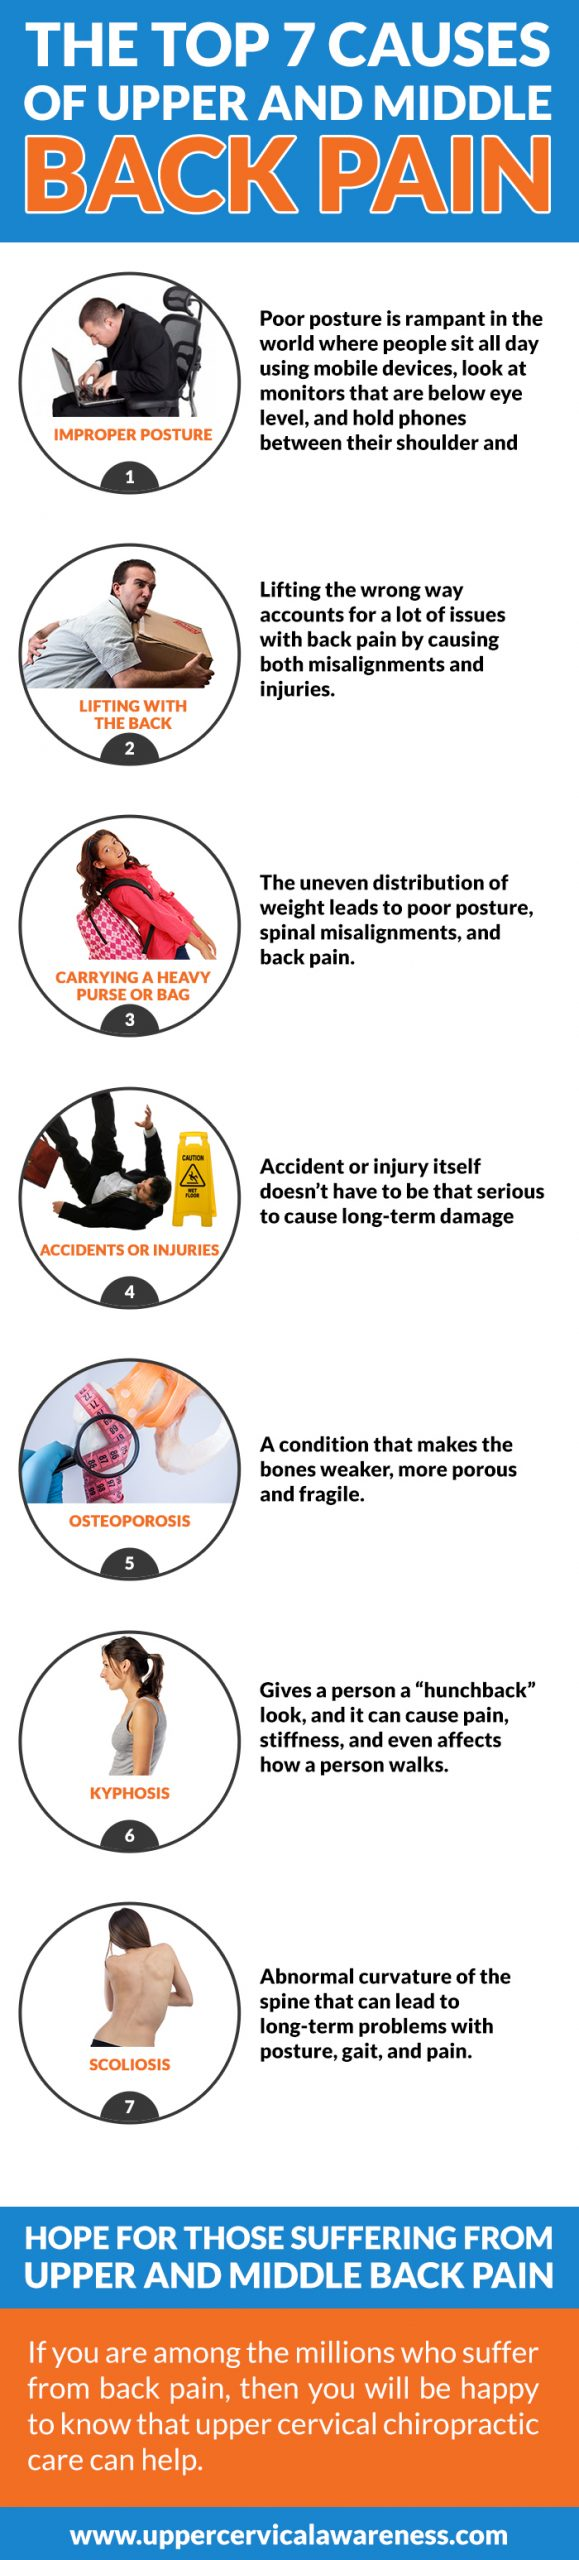 top-7-causes-middle-upper-back-pain